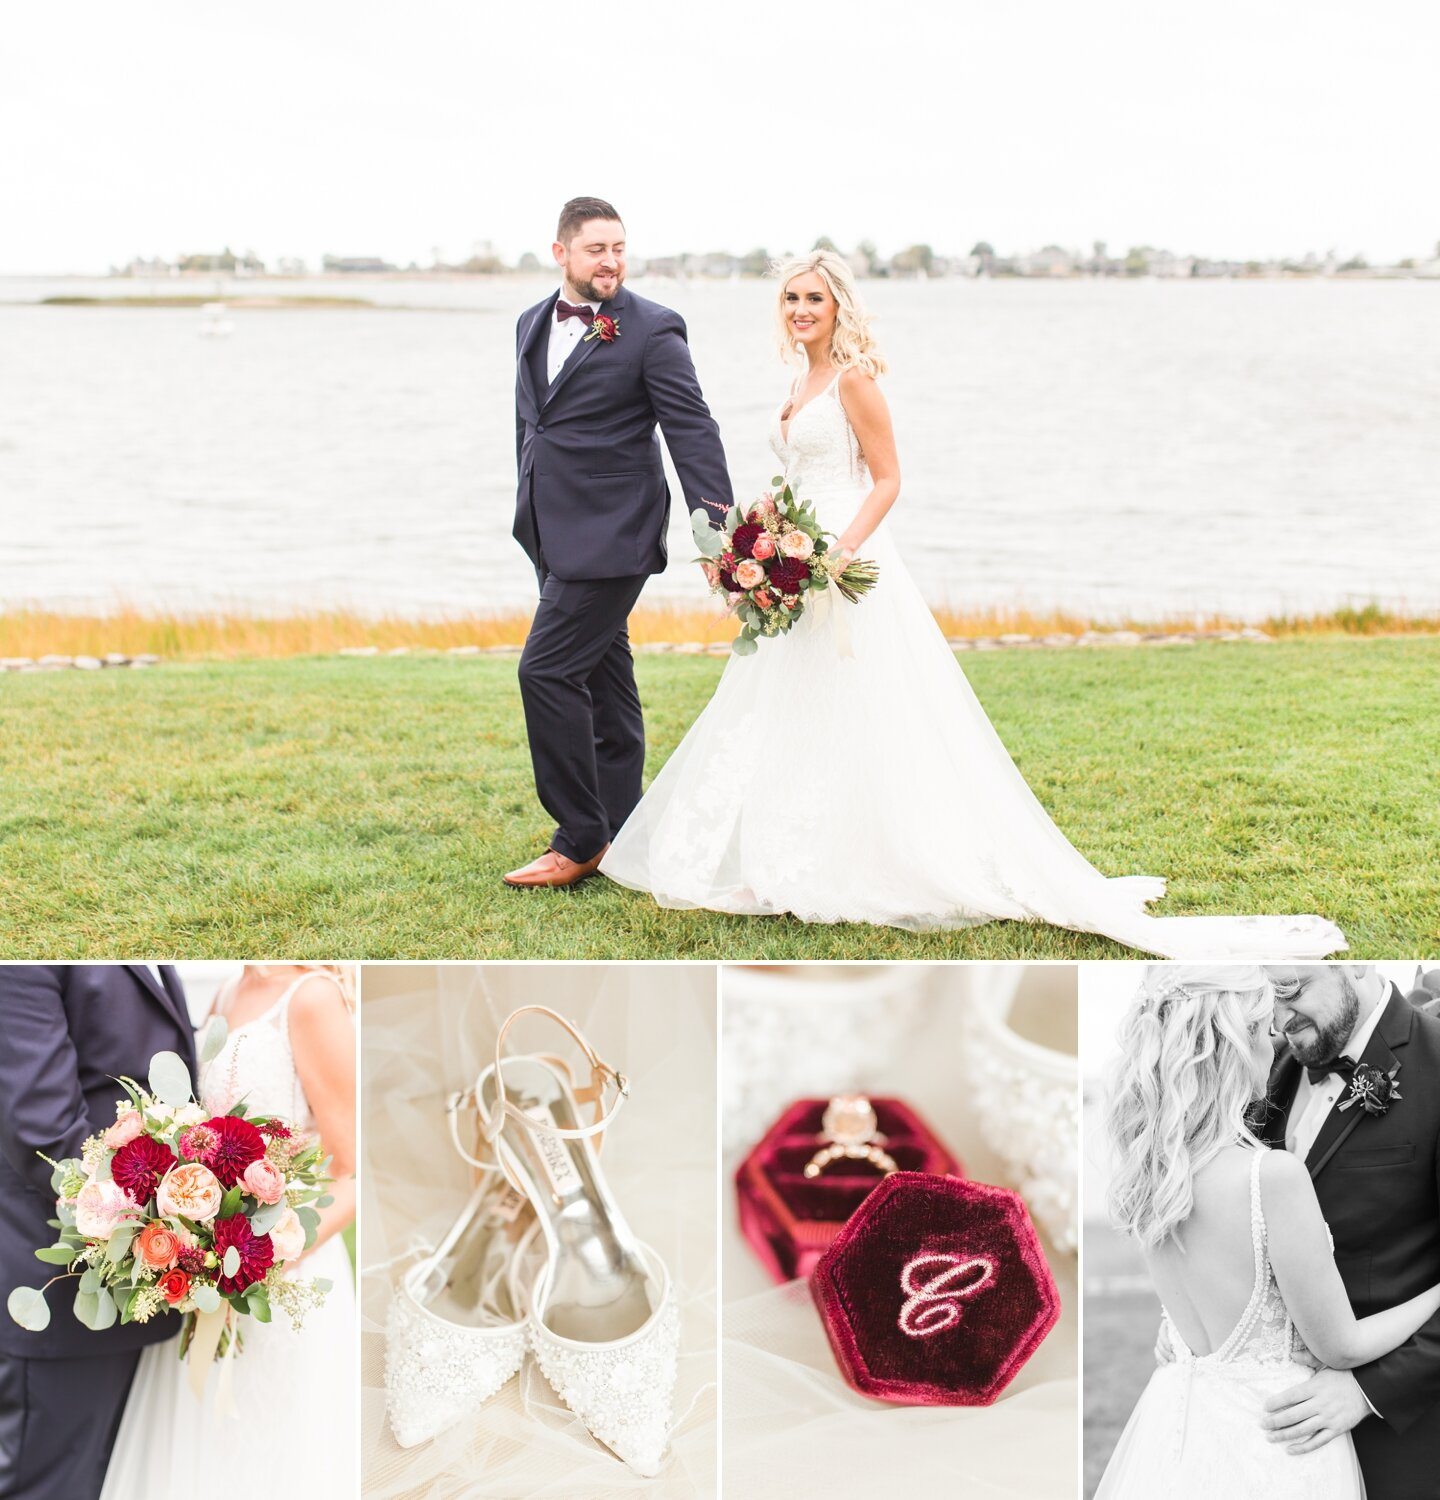 the-inn-at-longshore-wedding-westport-connecticut-photographer-laura-mike-shaina-lee-photography-cover-photo.jpg